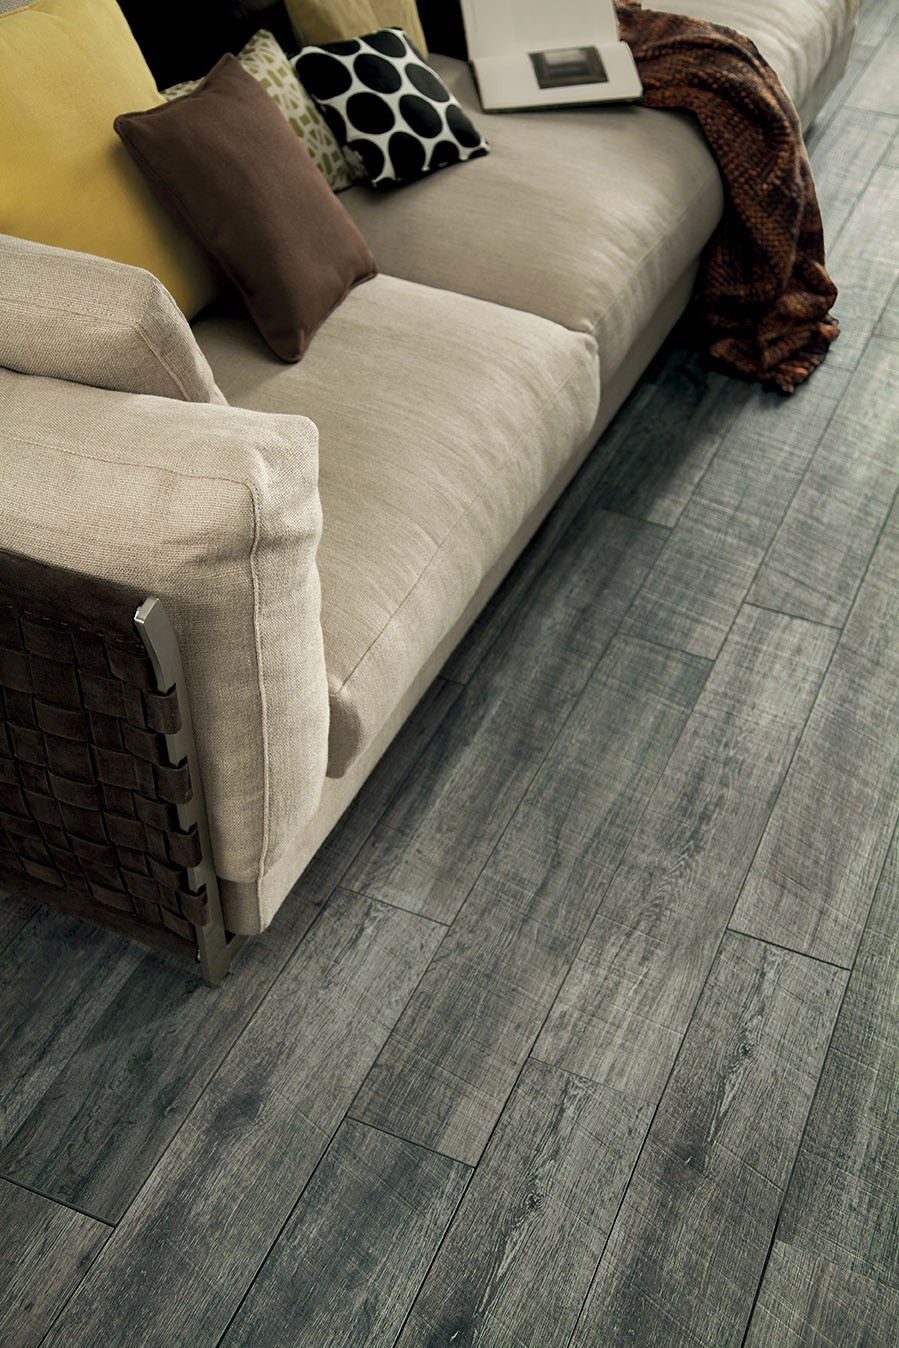 Carrelage imitation parquet gris anthracite 28 images for Carrelage imitation parquet gris